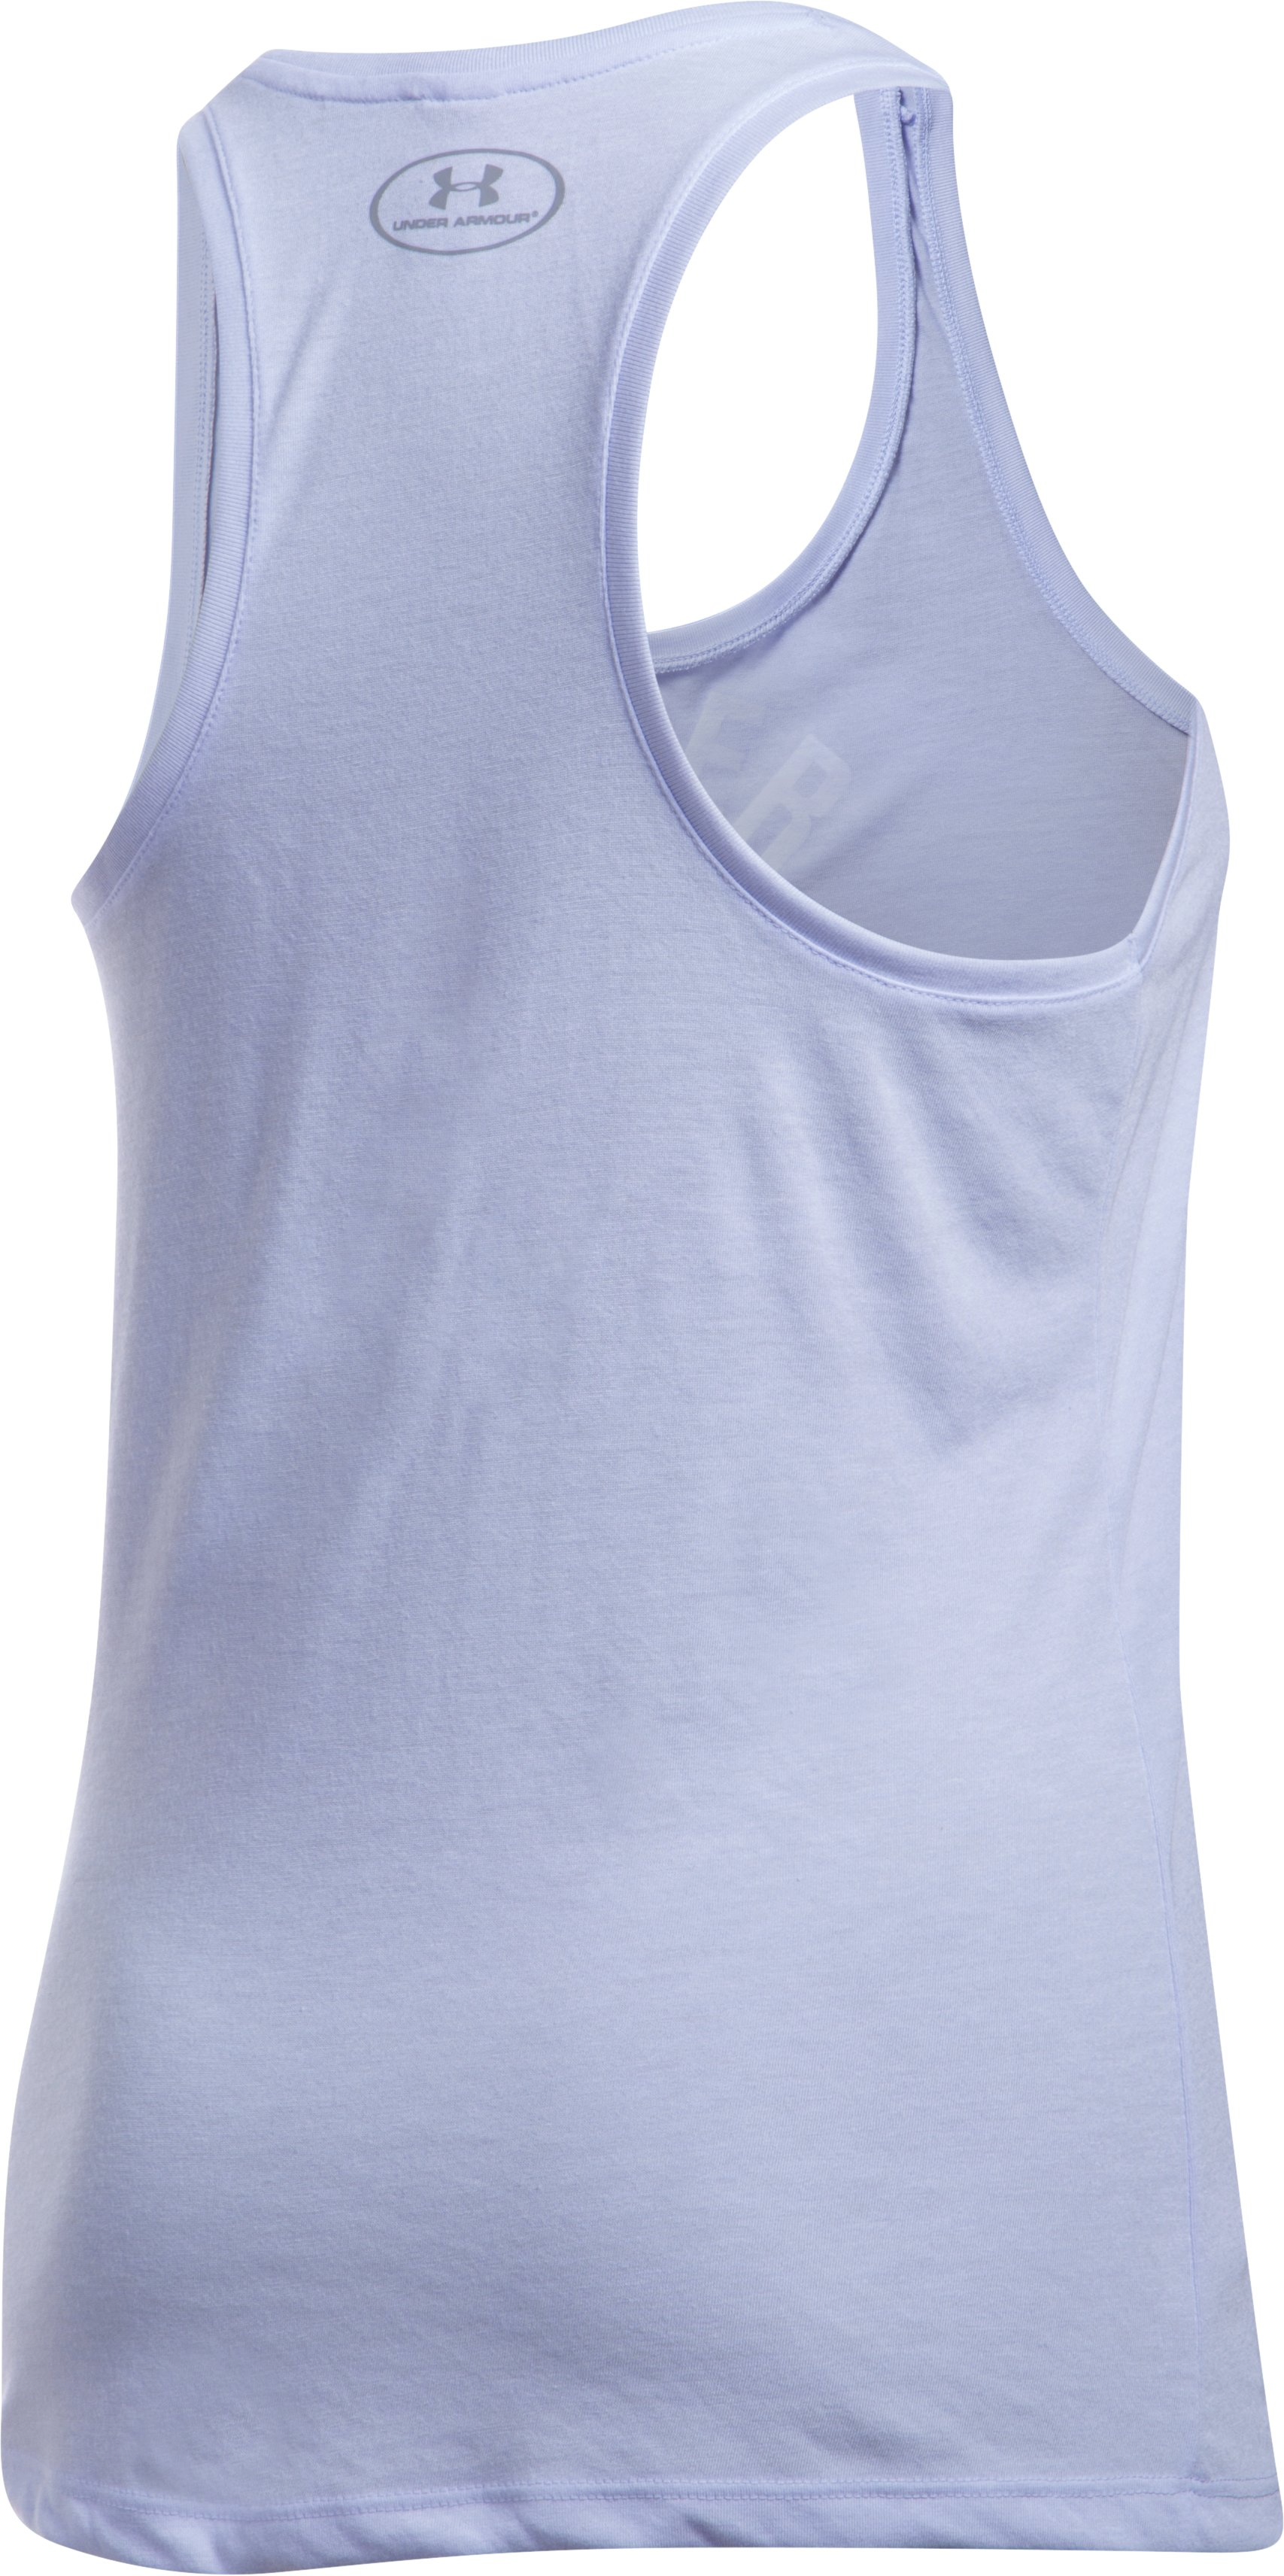 Women's UA Threadborne Train Wordmark Tank -Twist, LAVENDER ICE